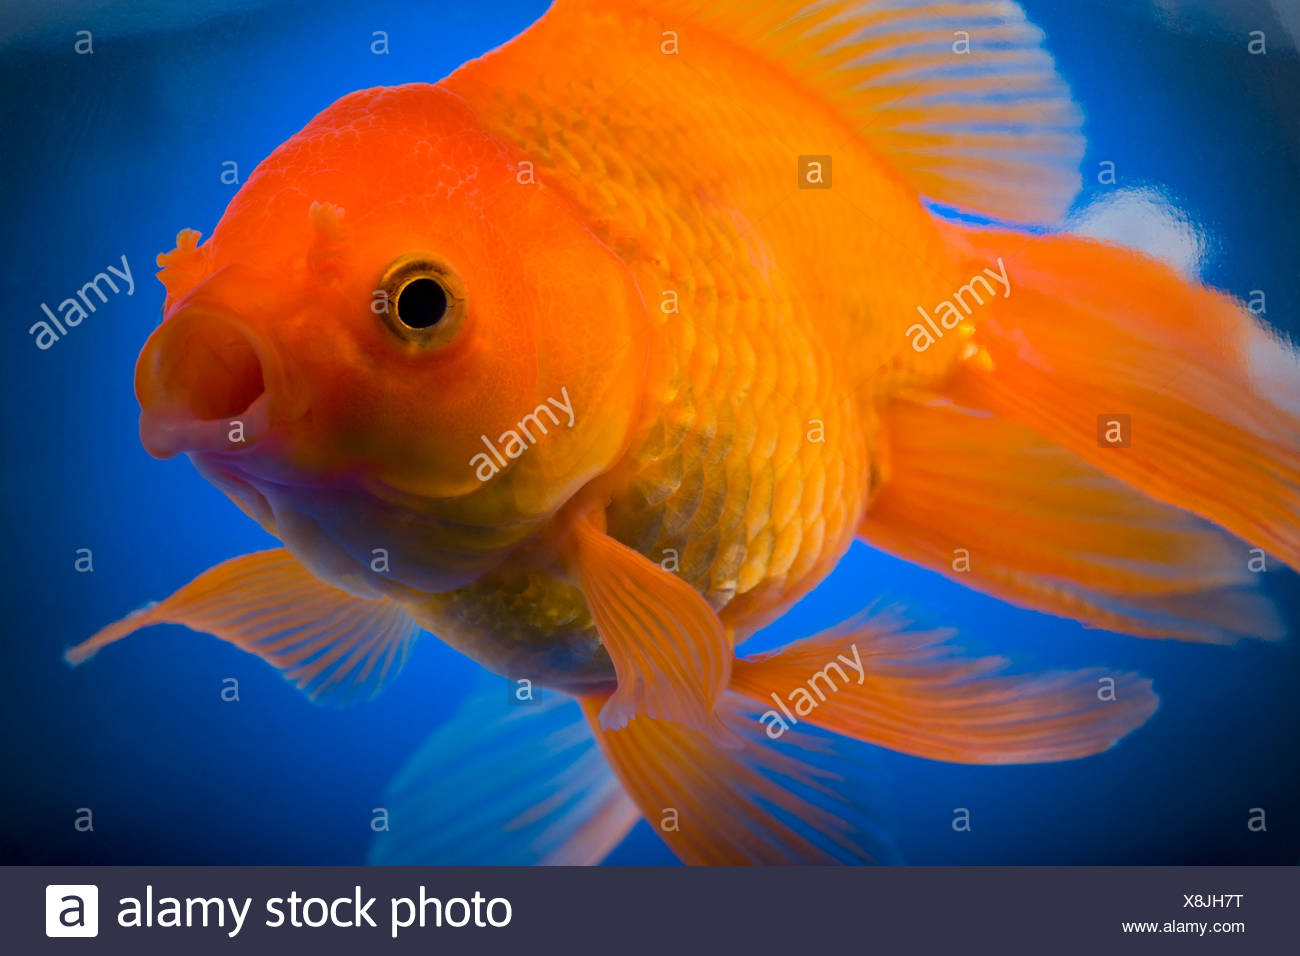 Detailed view of goldfish - Stock Image